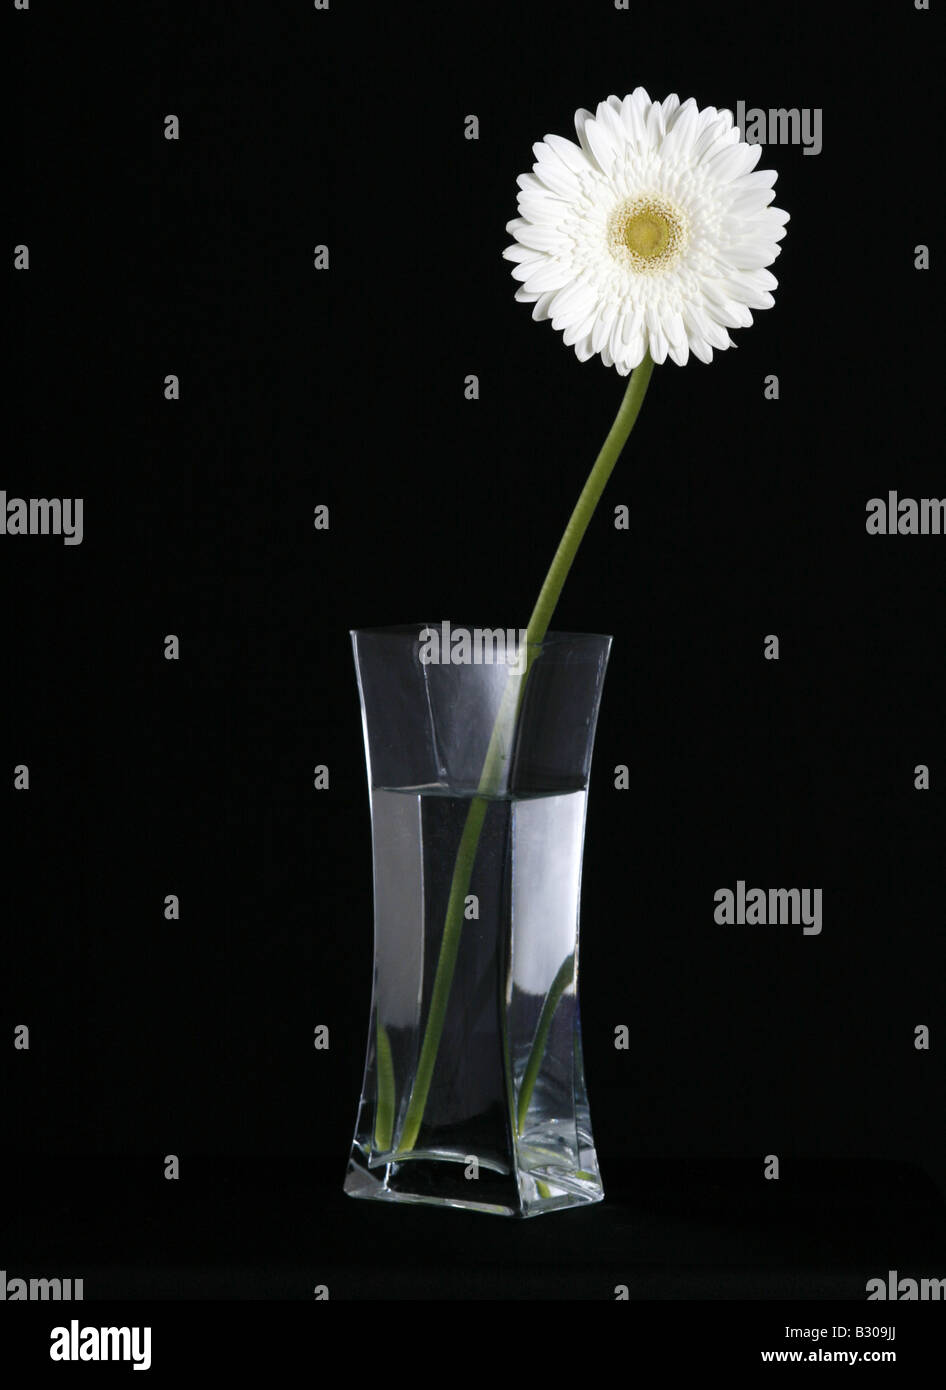 White gerbera flower in a glass vase against a black background white gerbera flower in a glass vase against a black background reviewsmspy